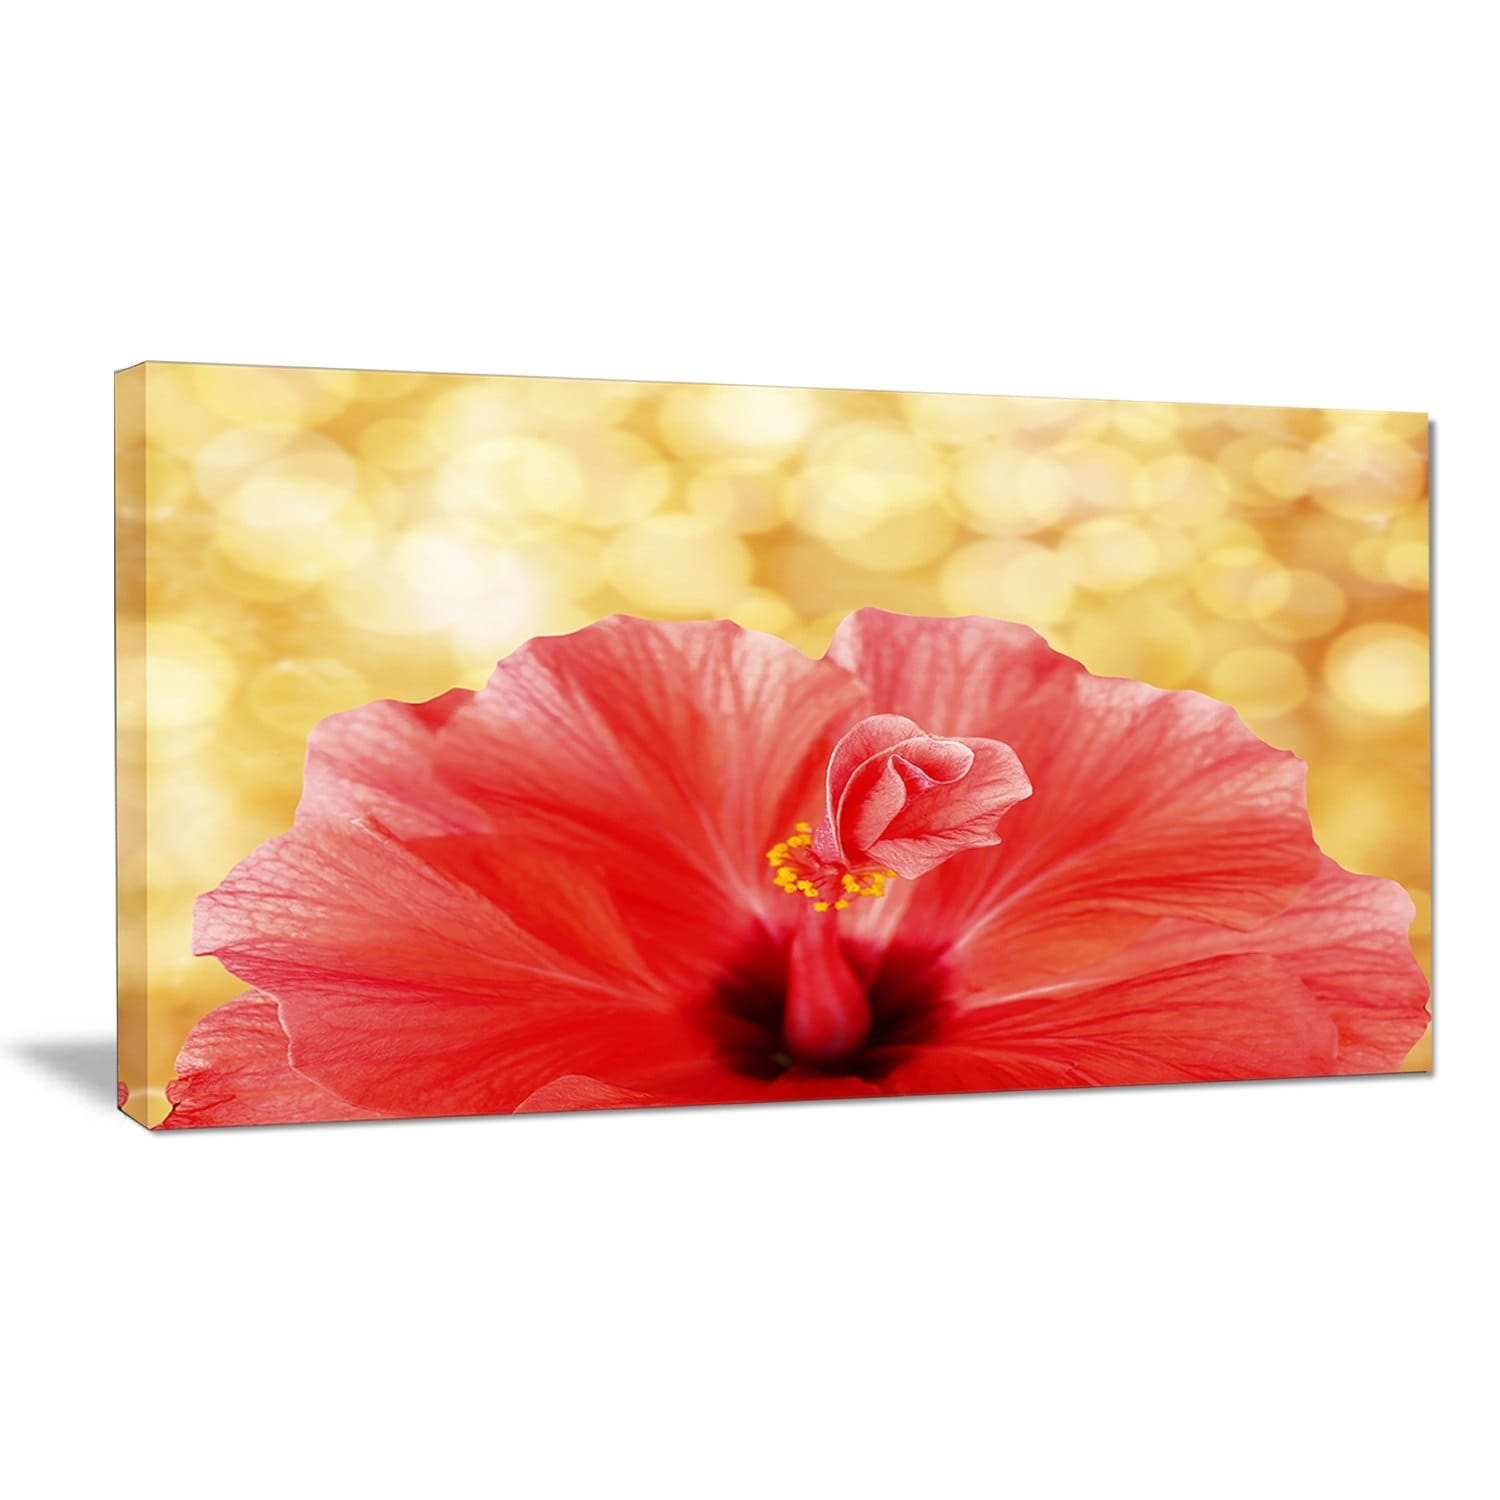 Shop designart hibiscus flower with lit up background large floral shop designart hibiscus flower with lit up background large floral canvas artwork free shipping on orders over 45 overstock 19746649 izmirmasajfo